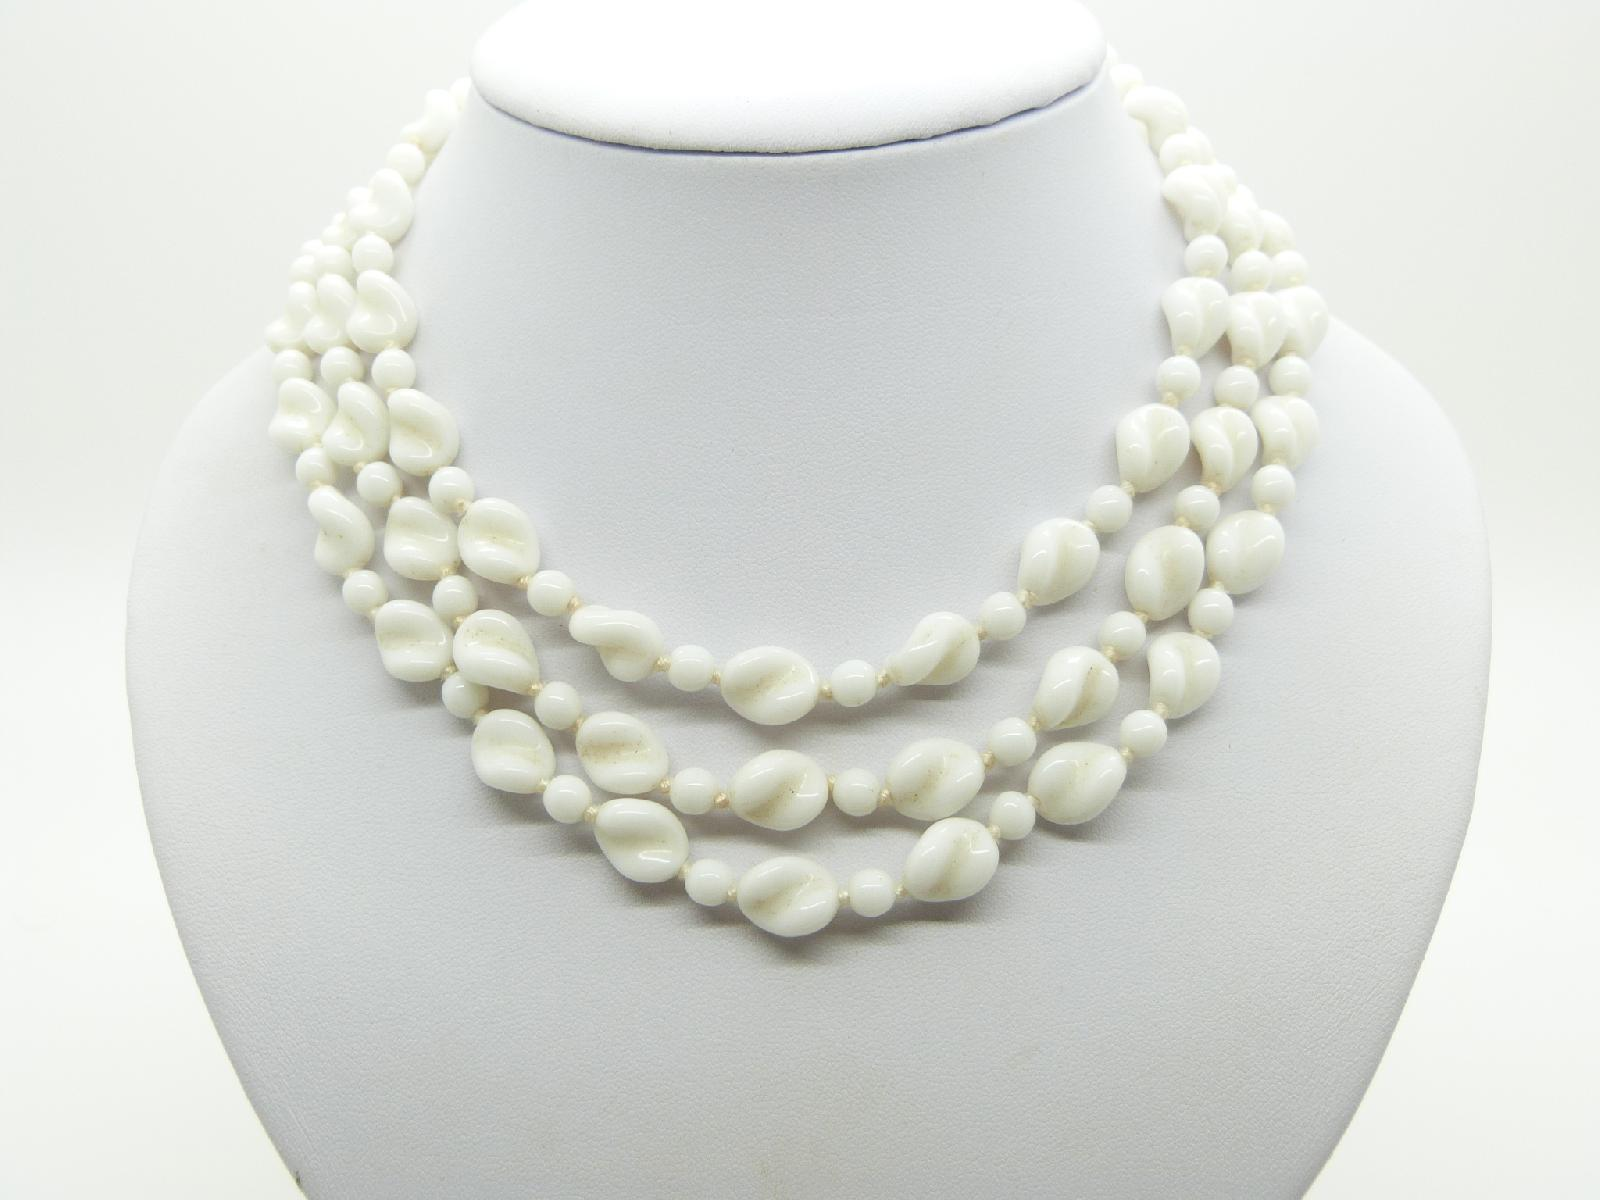 Vintage 50s Pretty Three Row White Glass Swirl Bead Necklace Length 46cms